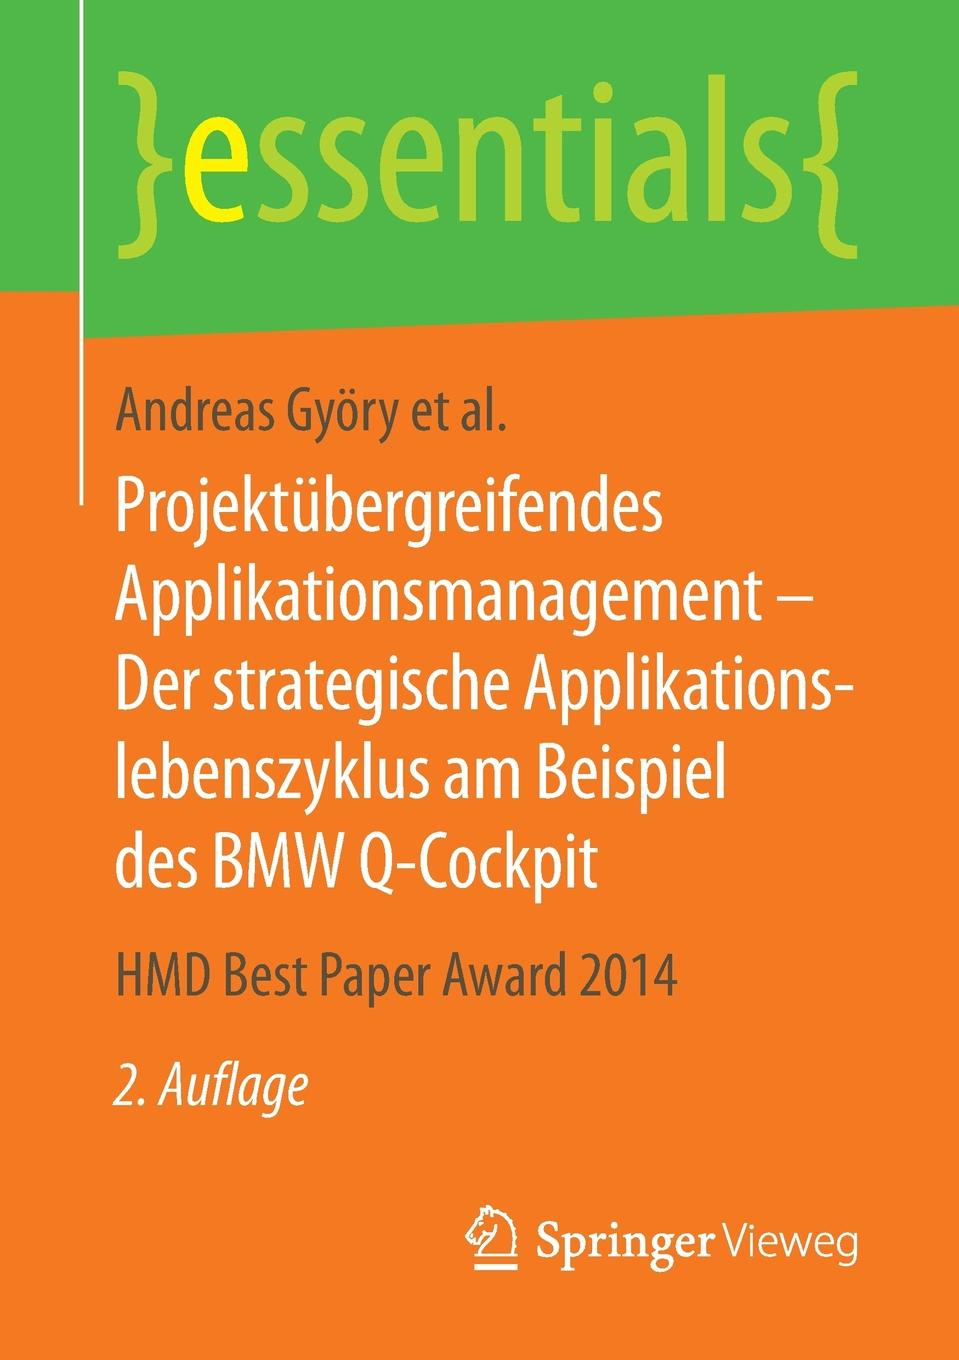 Andreas Györy, Anne Cleven, Günter Seeser Projektubergreifendes Applikationsmanagement - Der strategische Applikationslebenszyklus am Beispiel des BMW Q-Cockpit. HMD Best Paper Award 2014